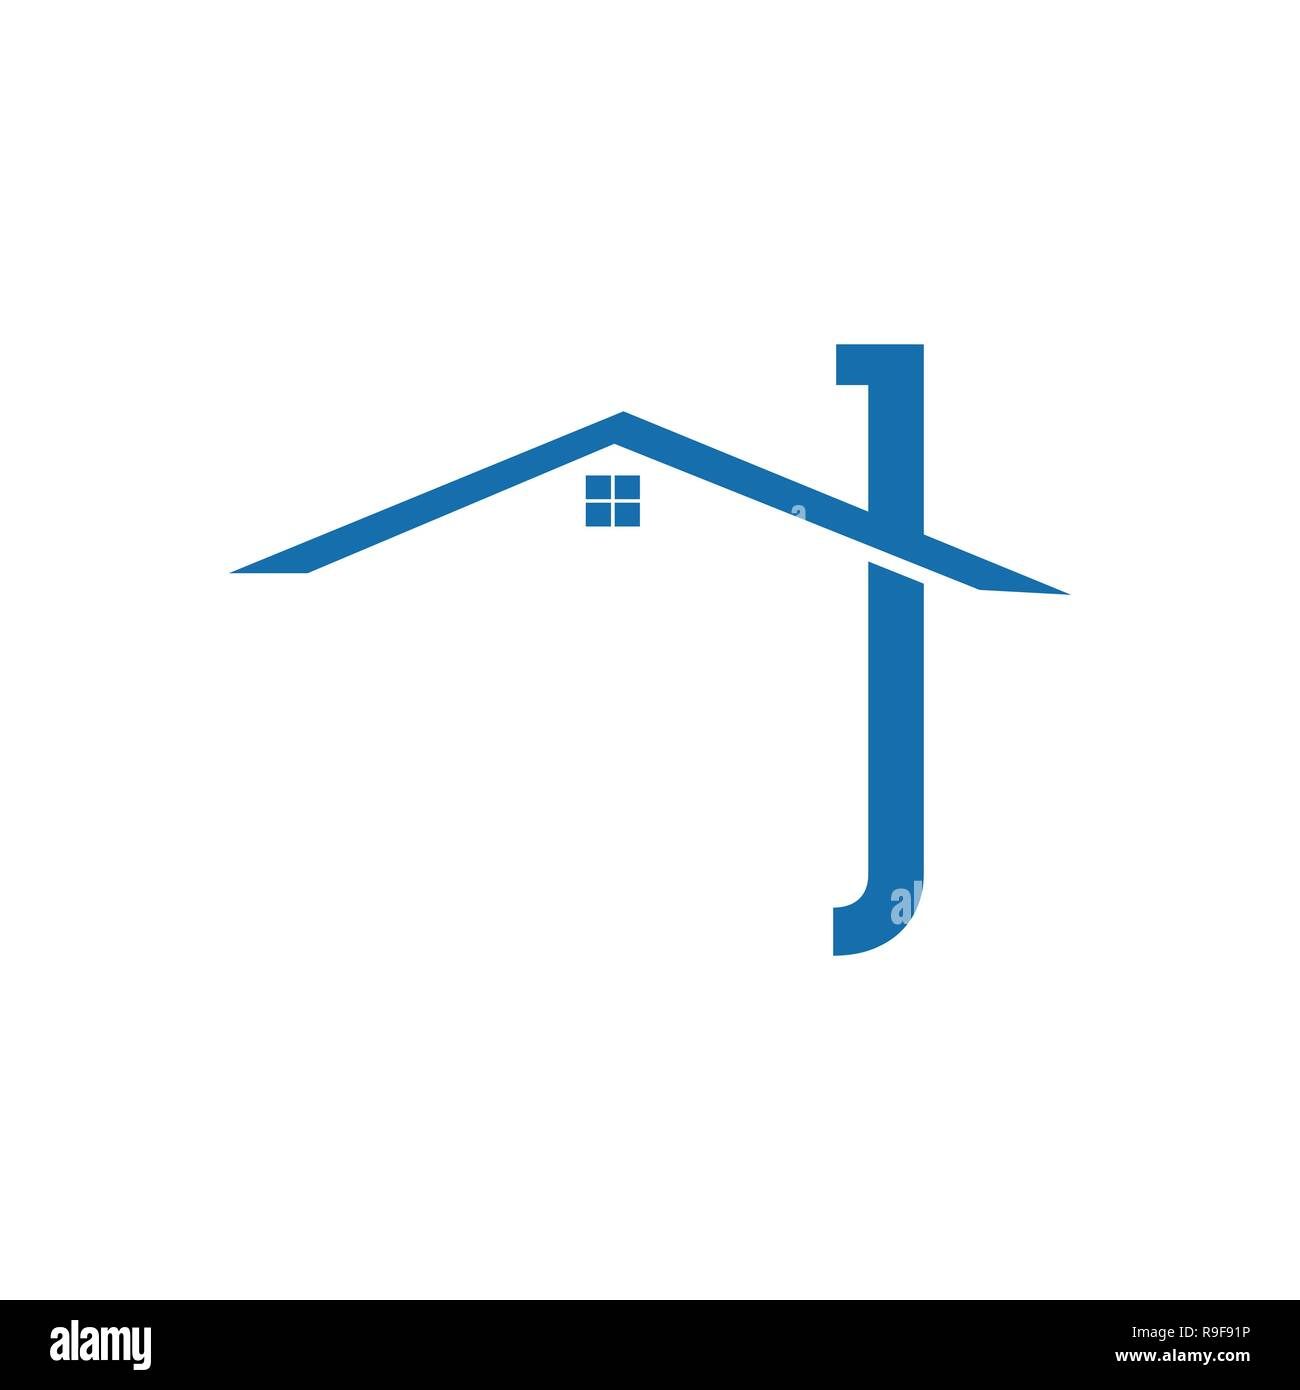 Realty logo design vector concept and idea. Real Estate vector logo design template. House abstract icon. Home Construction architecture symbol. Stock Vector